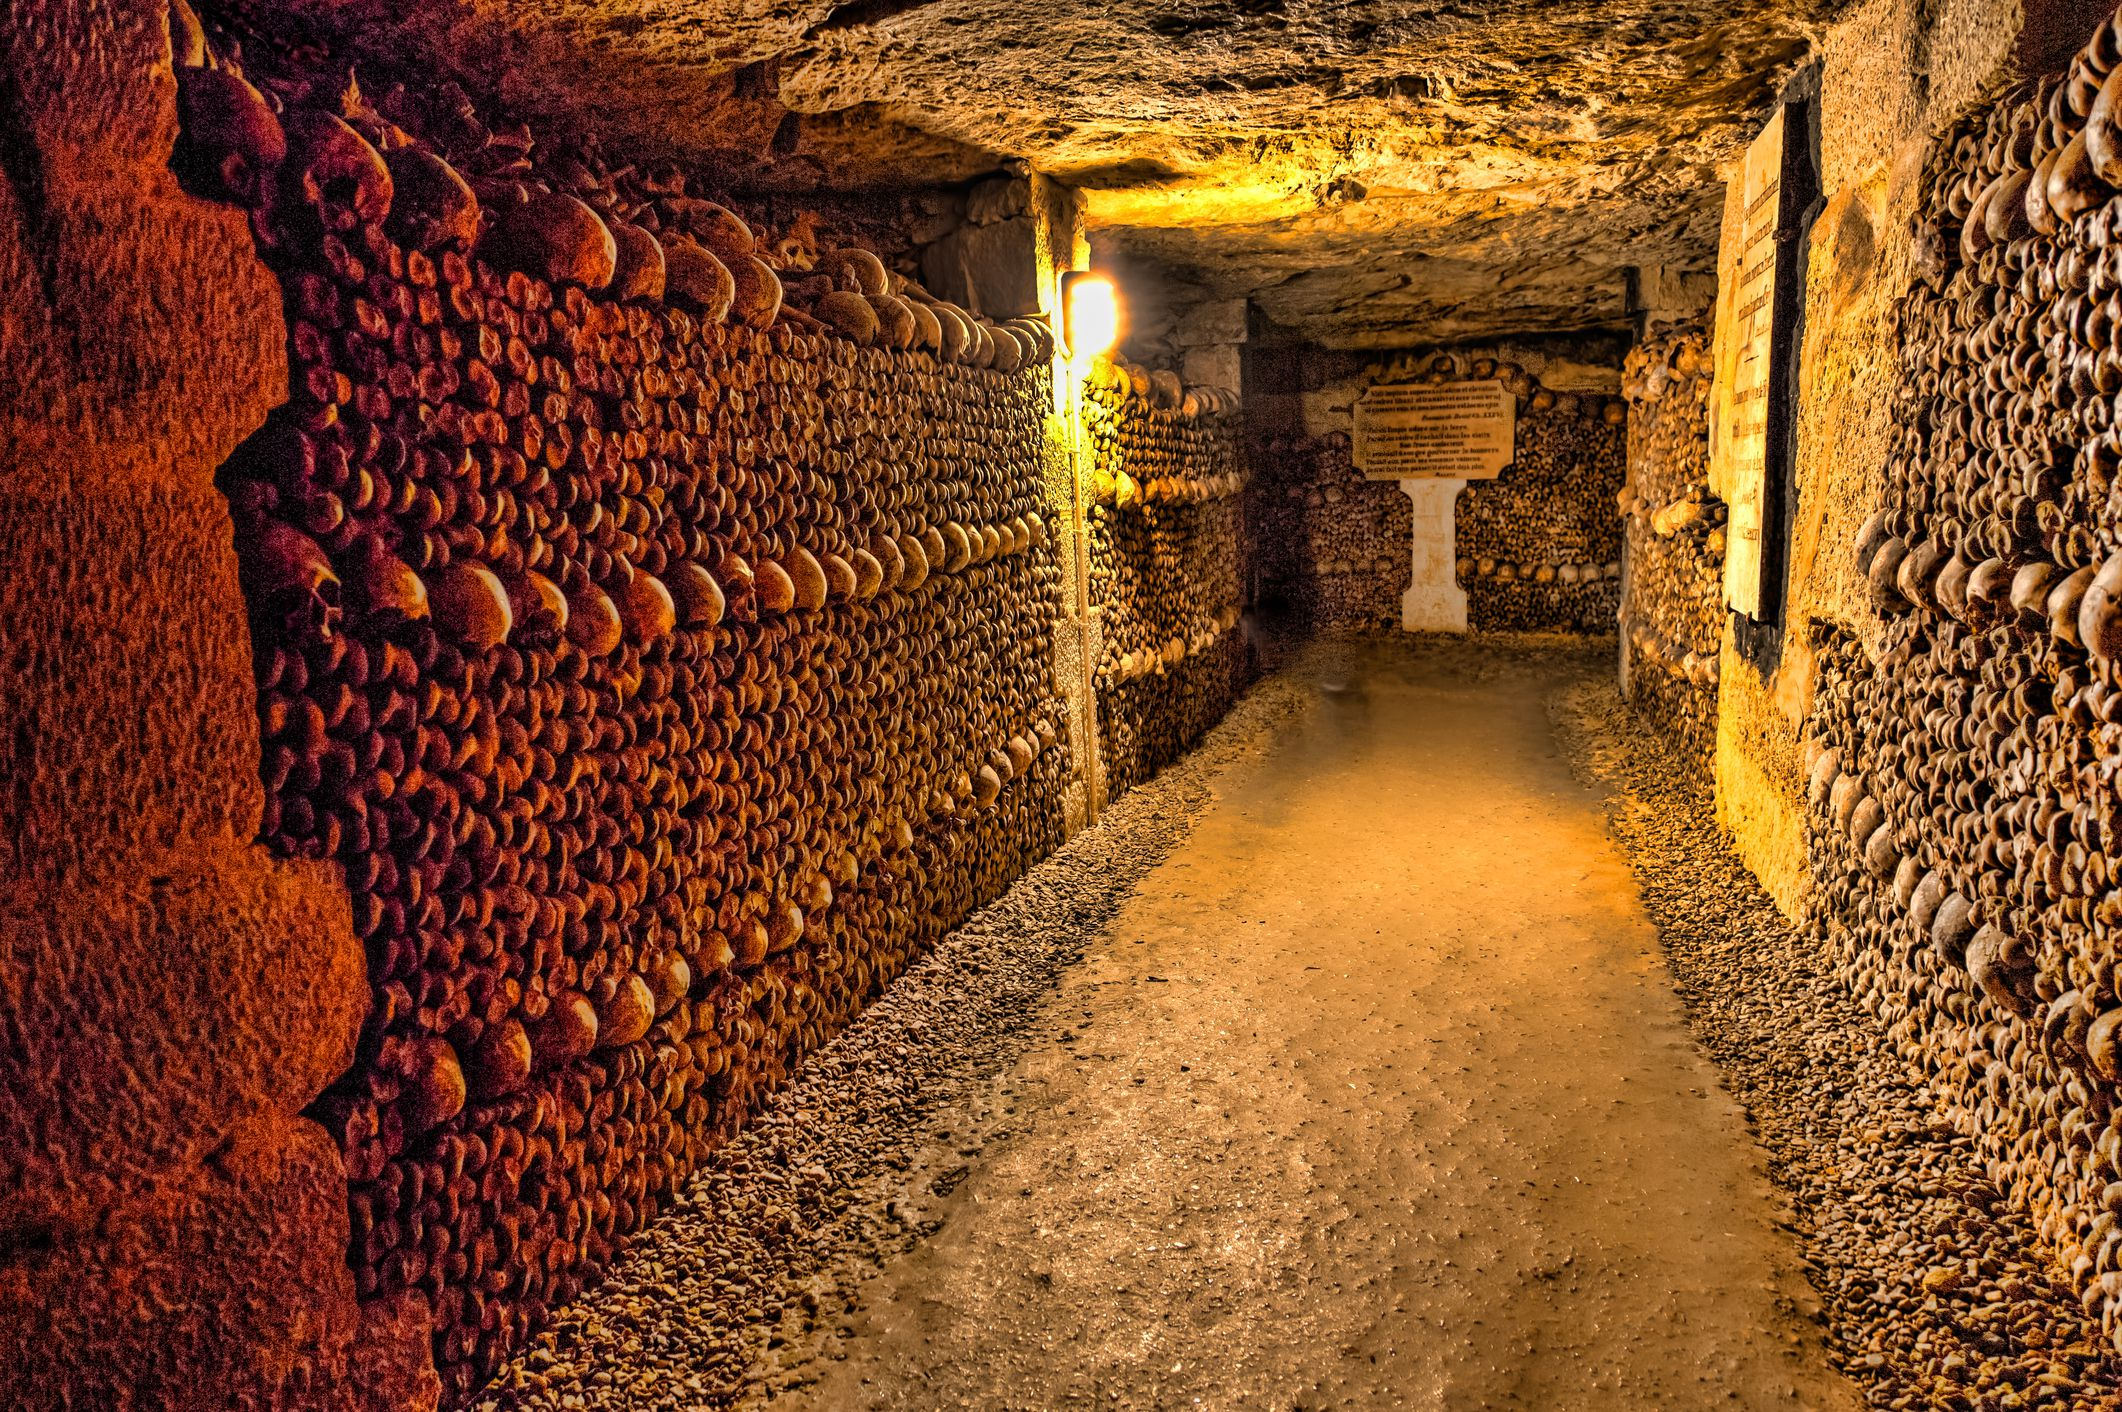 Slide 20 of 52: The underground ossuaries in Paris, France, built in the 18th century, enshrine the remains of several million Parisians.